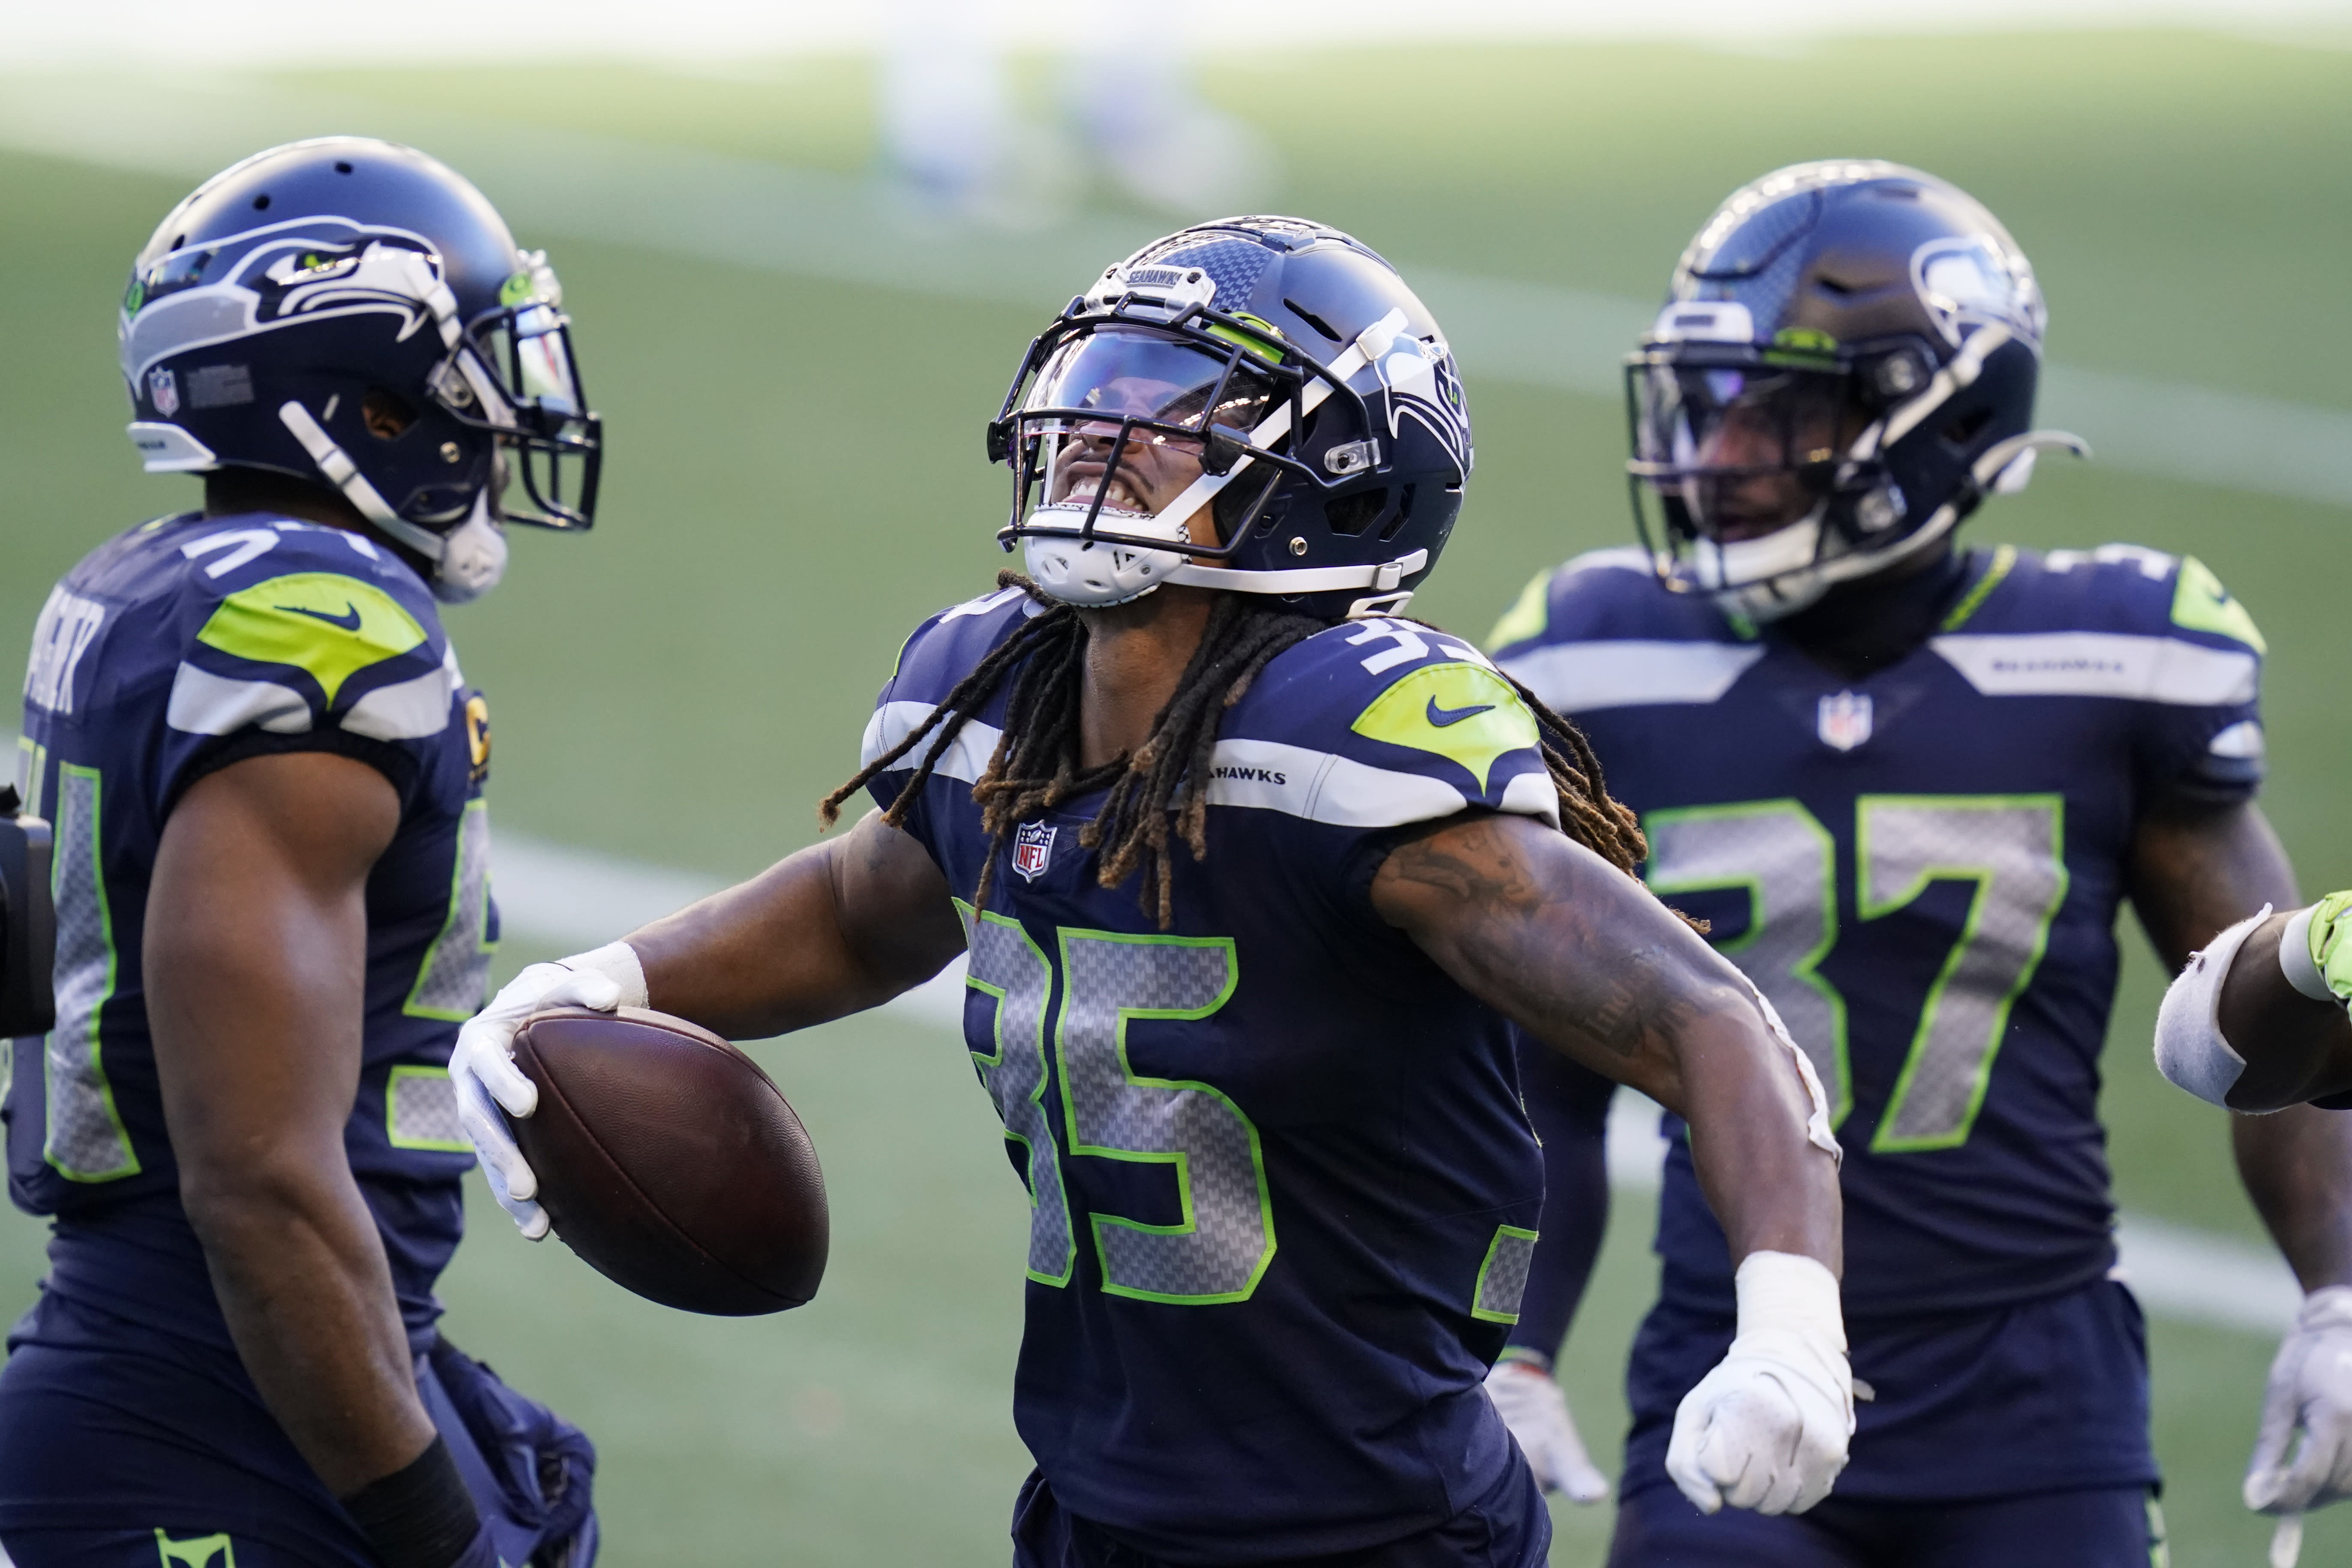 Seattle Seahawks cornerback Ryan Neal celebrates after he intercepted a pass late in the second half of an NFL football game against the Dallas Cowboys, Sunday, Sept. 27, 2020, in Seattle. The Seahawks won 38-31. (AP Photo/Elaine Thompson)